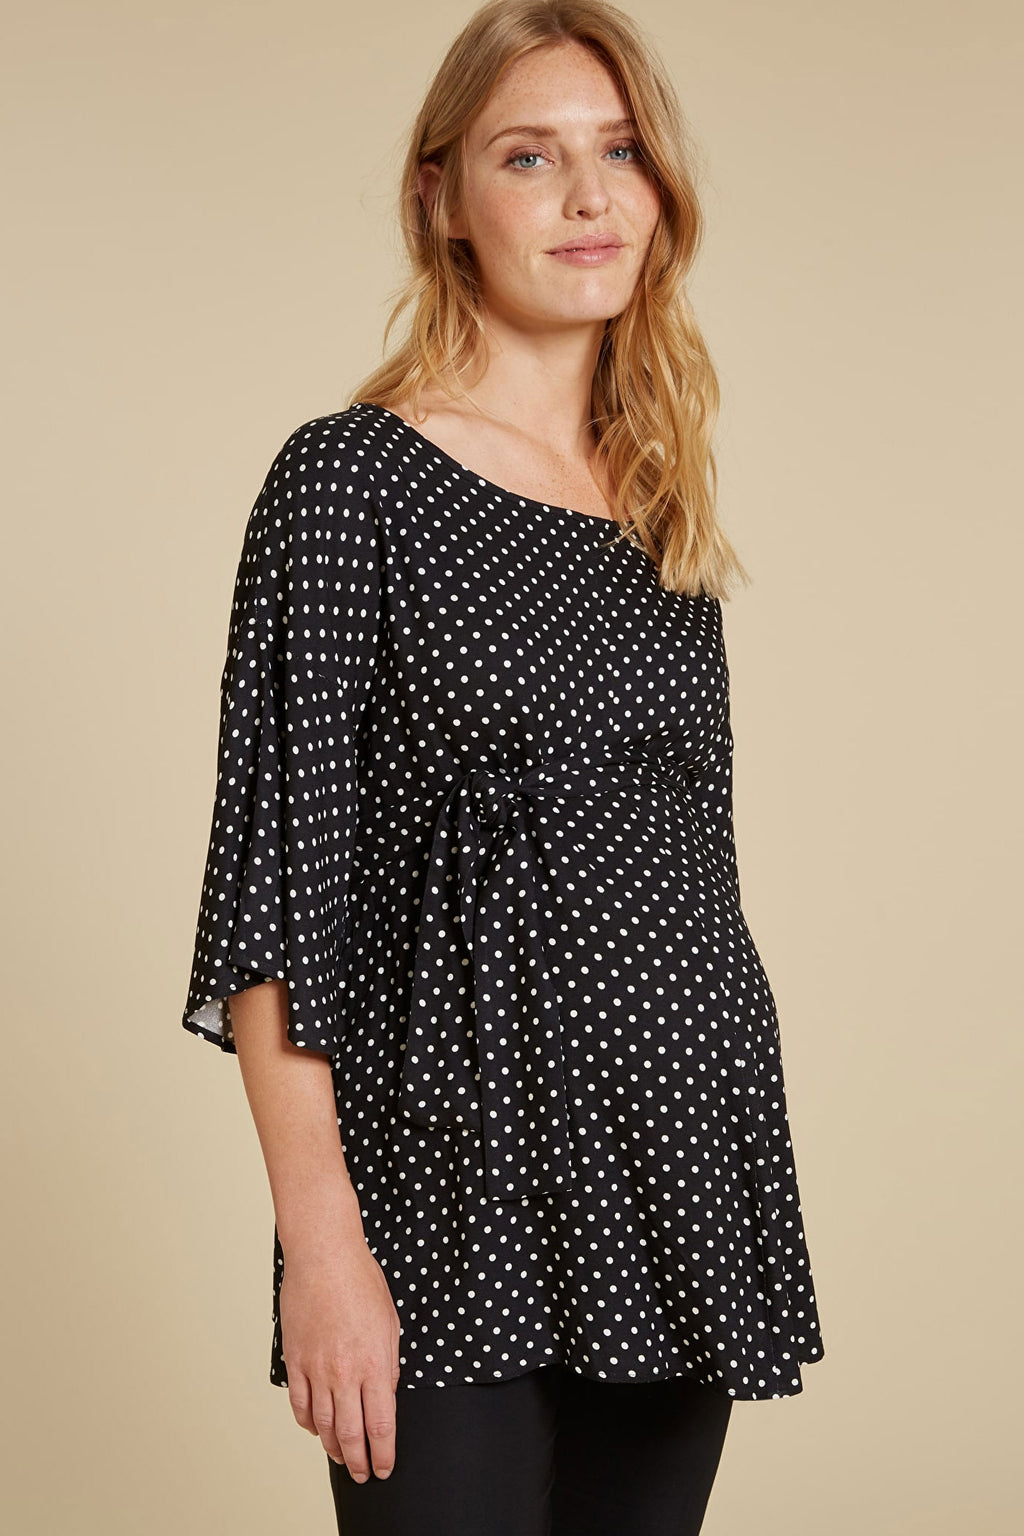 Isabella Oliver Margot Crepe Maternity Blouse - Seven Women Maternity